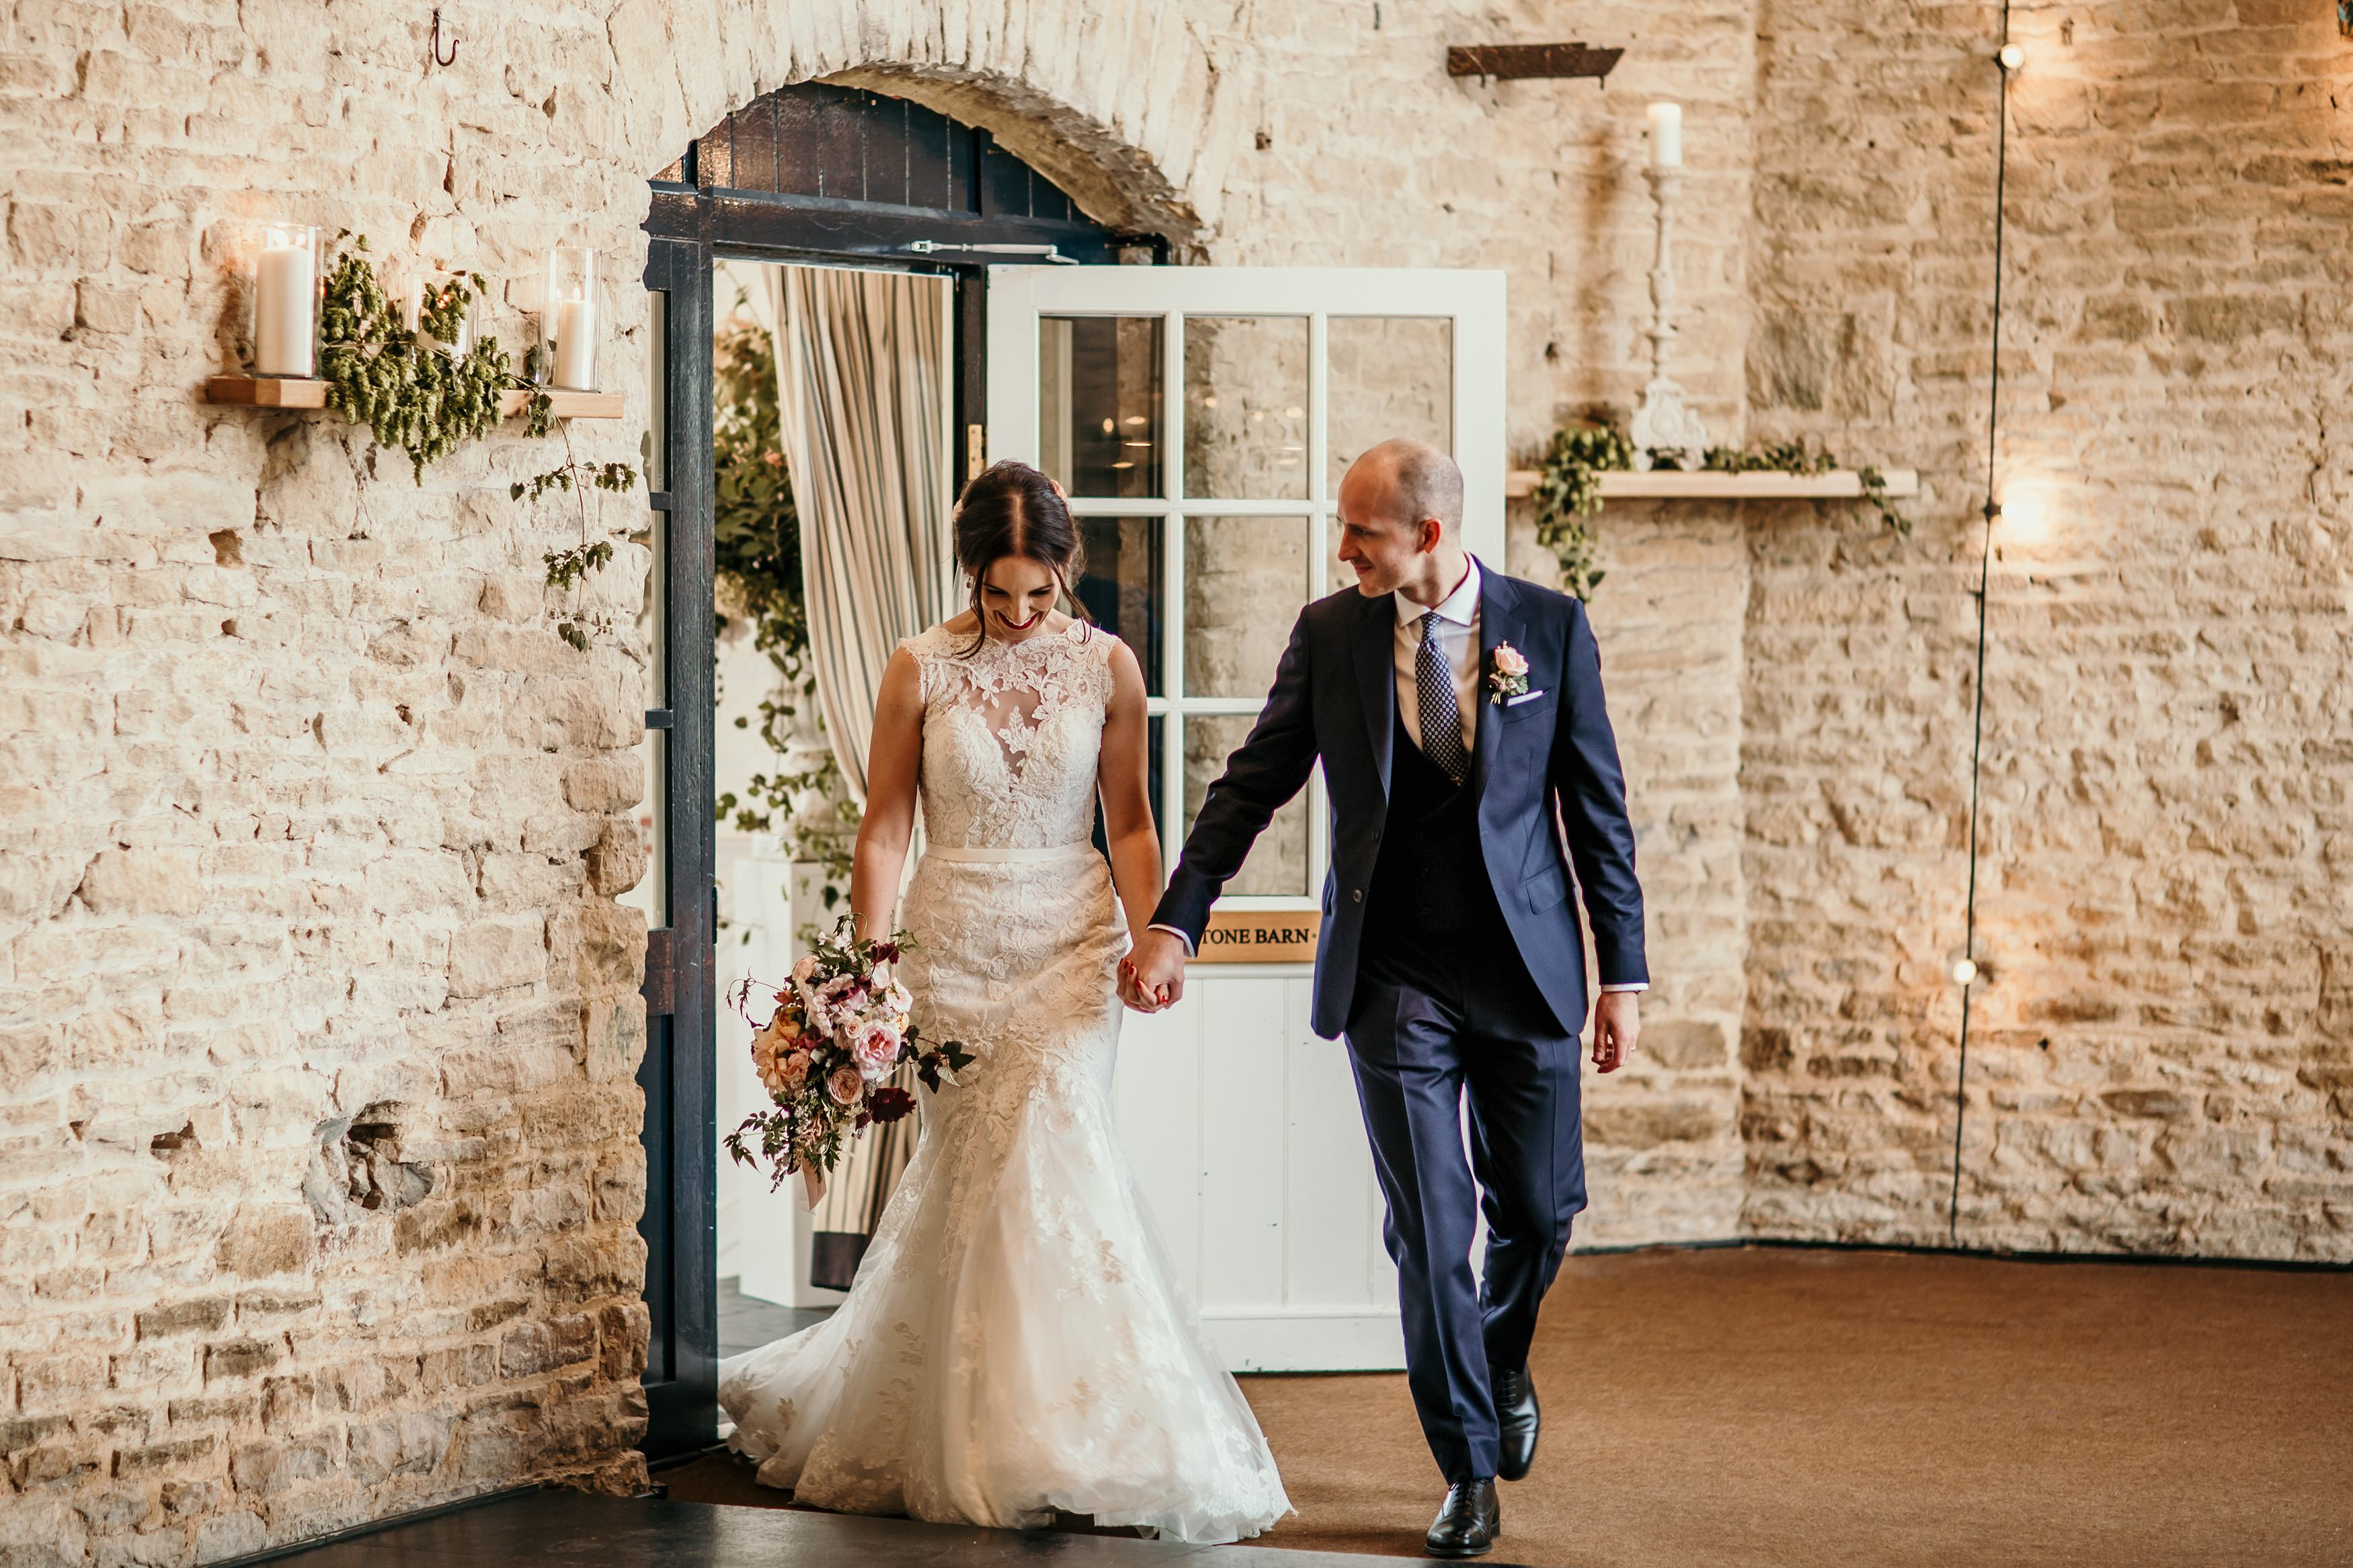 bride and groom enter the wedding barn at Merriscourt Barn Wedding venue by Cotswolds wedding photographer